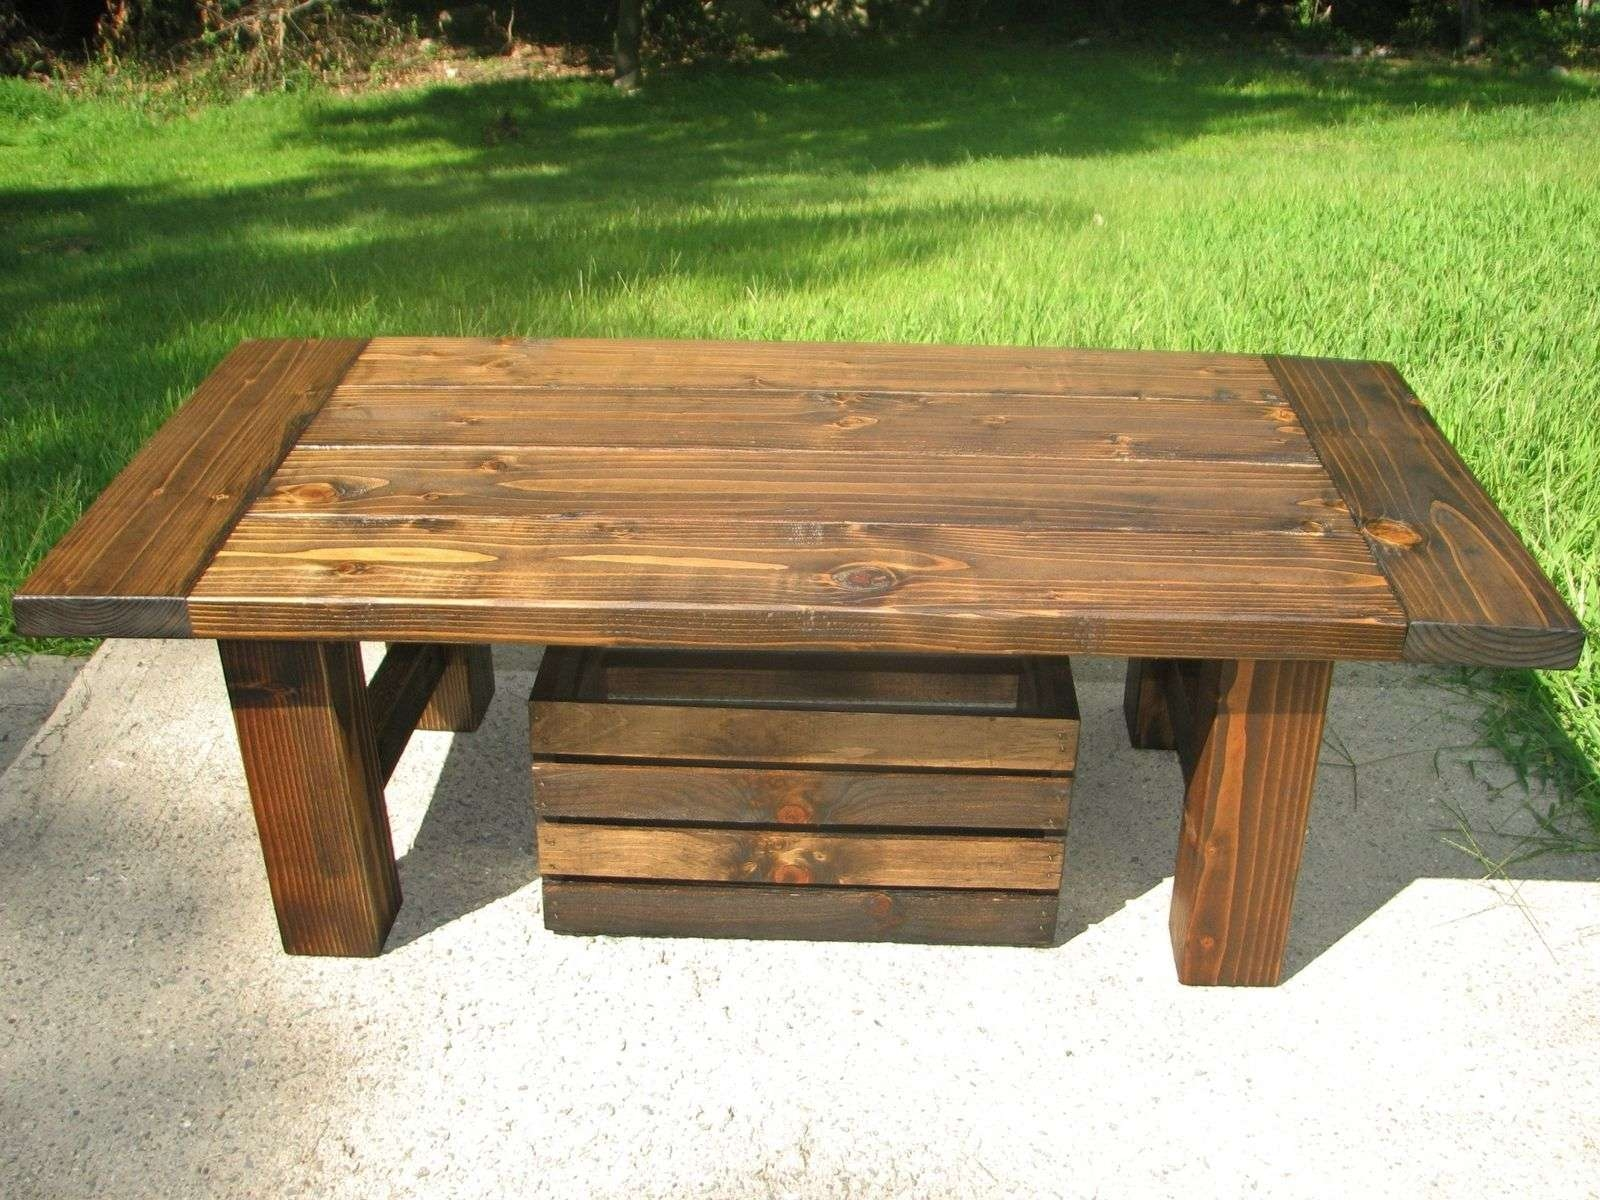 Buy A Handmade Country Coffee Table, Made To Order From Custom Intended For Popular Country Coffee Tables (View 2 of 20)